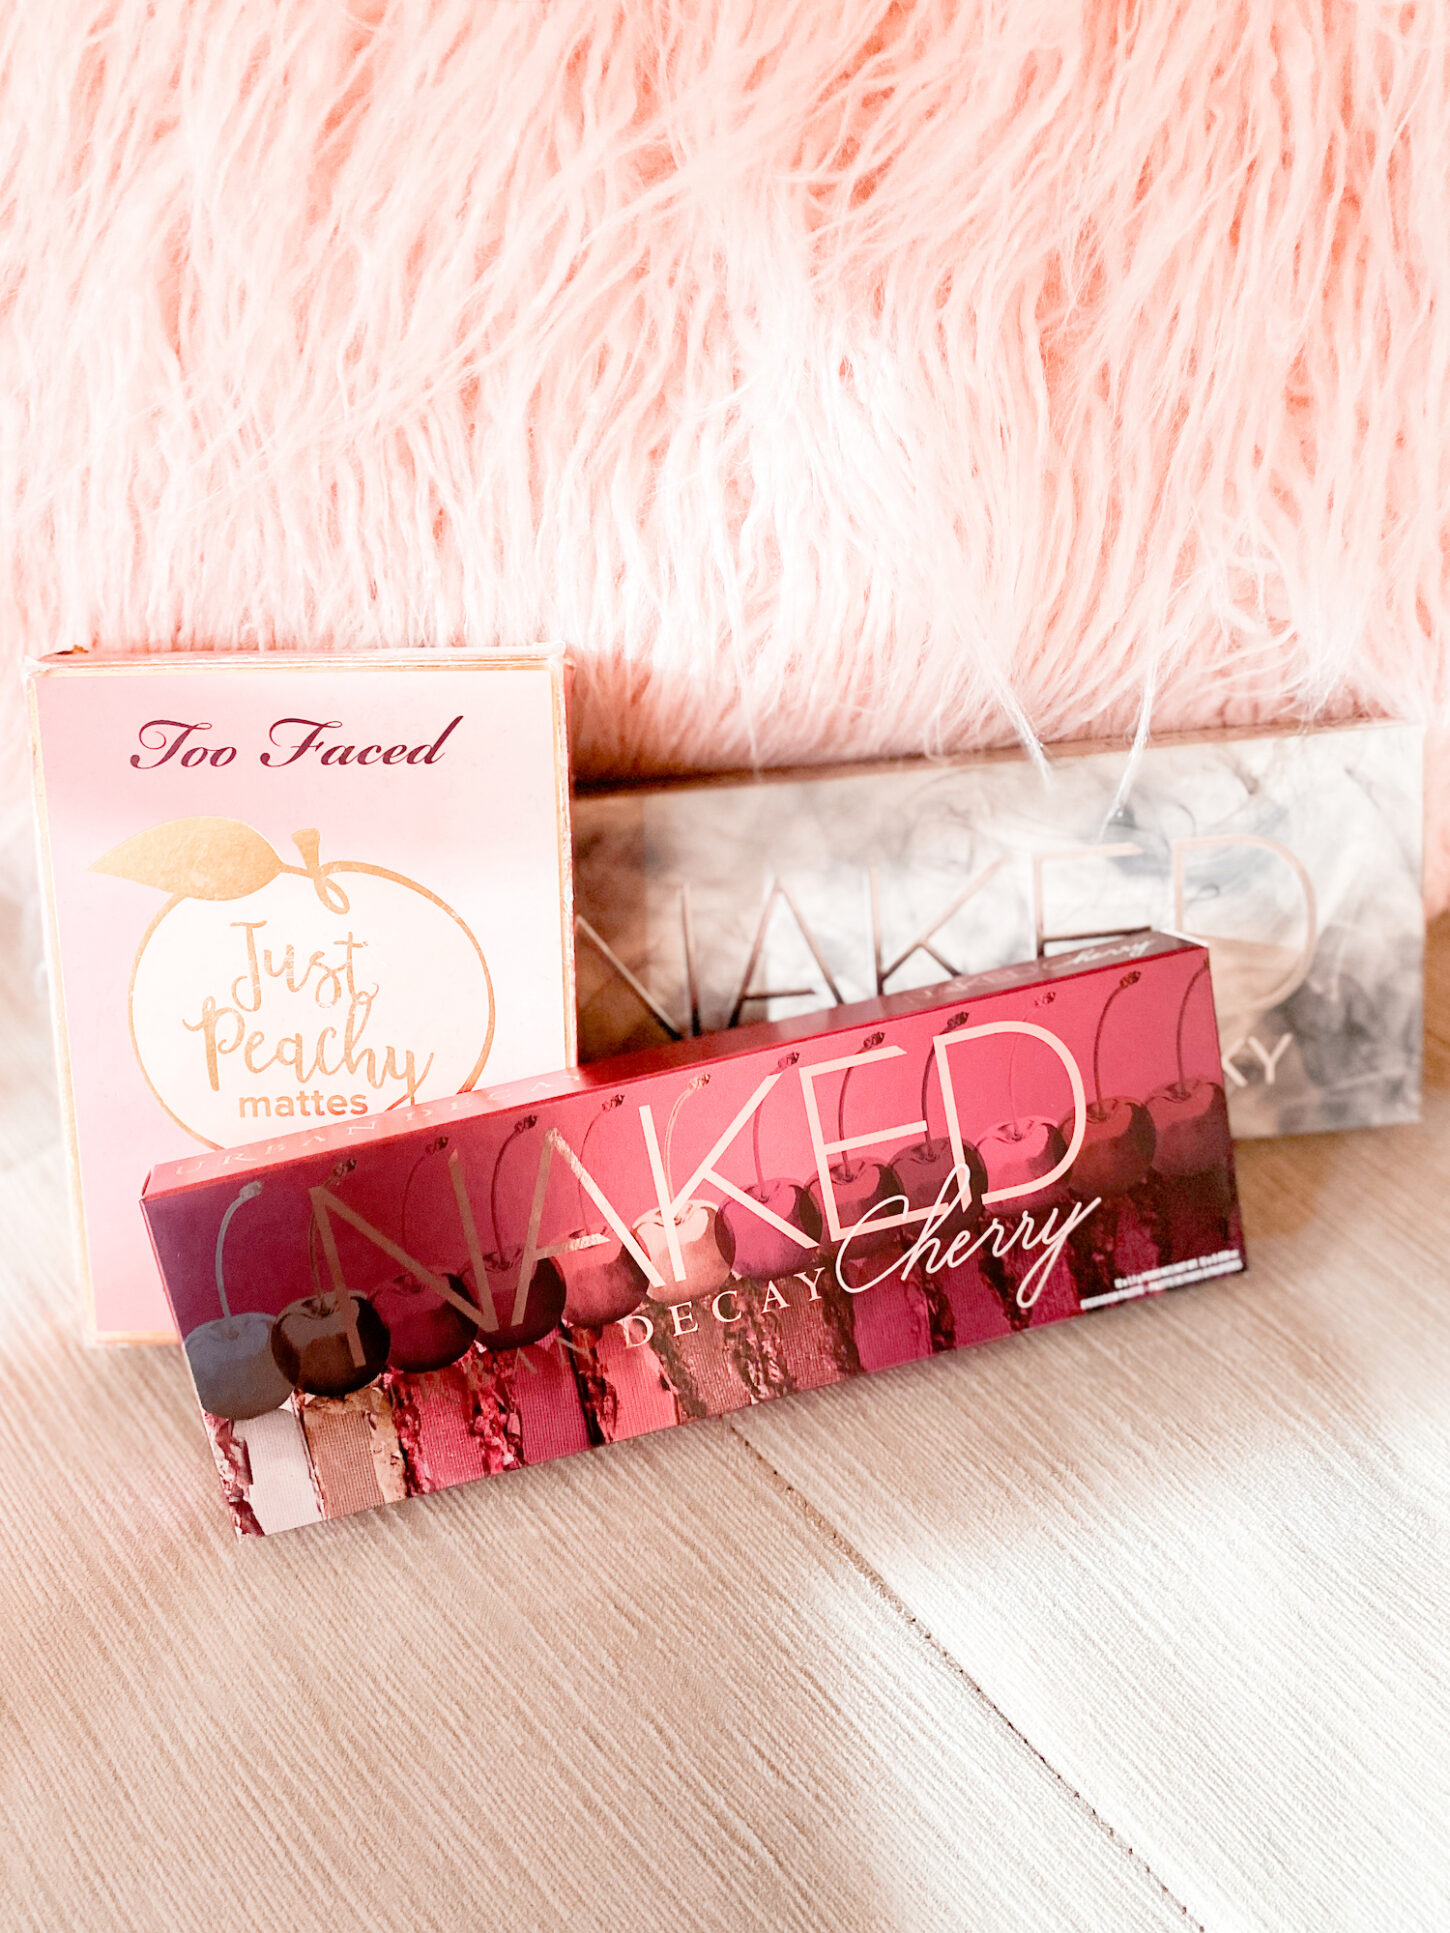 best eyeshadow palettes to buy, naked urban decay cherry eyeshadow palette, naked urban decay smoky eyeshadow palette, too faced just peachy eyeshadow palette